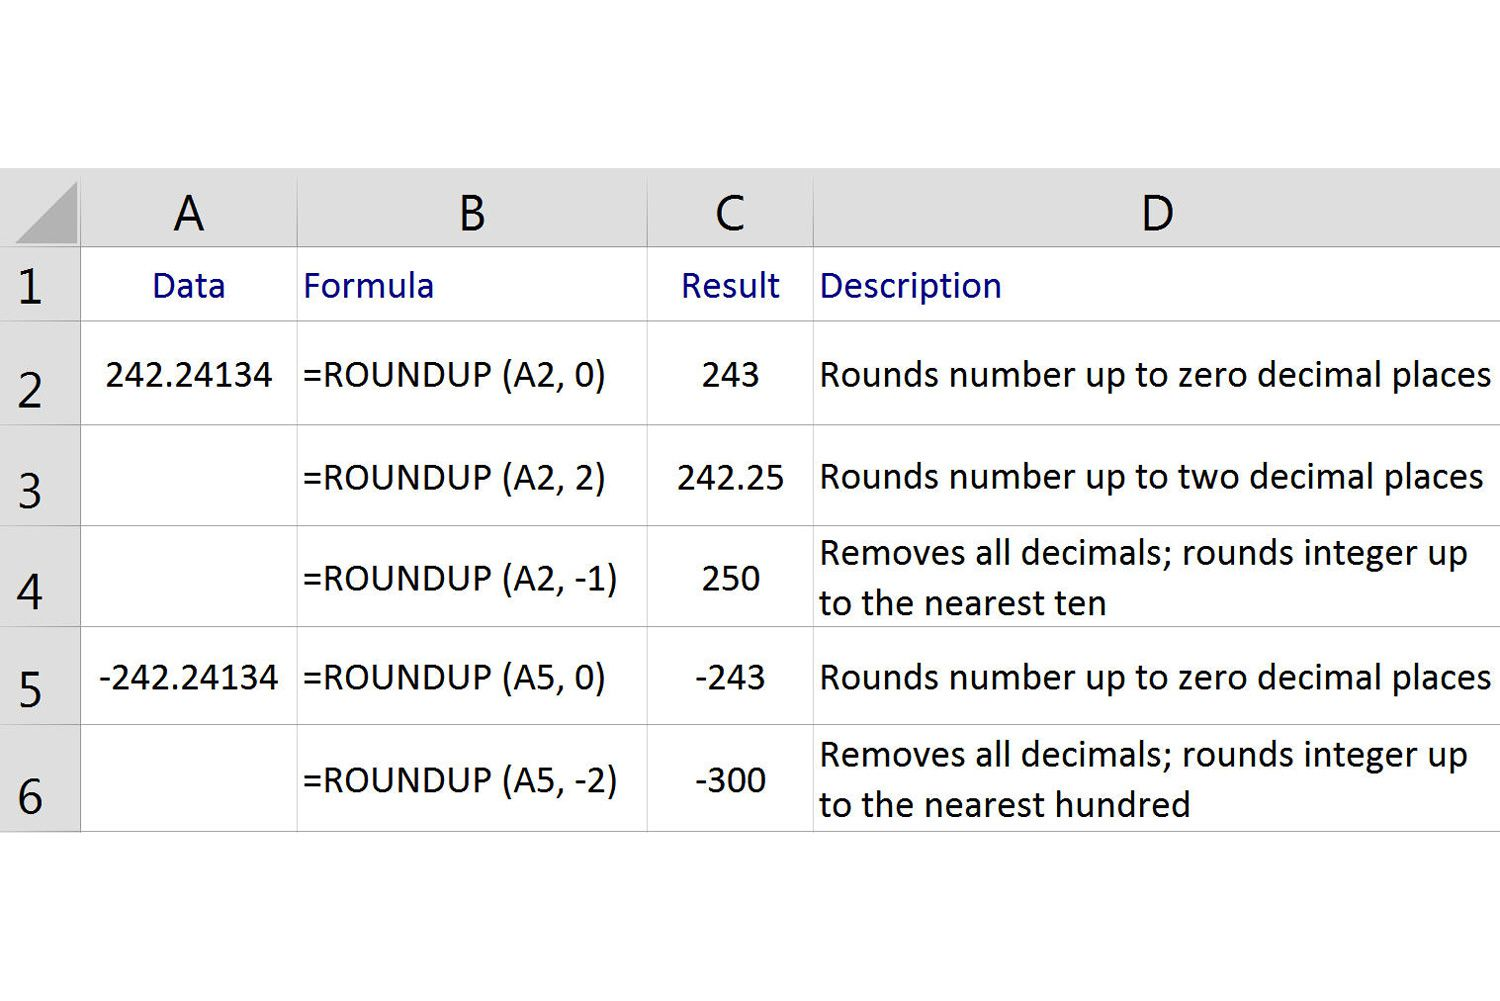 worksheet Rounding To 1 Decimal Place Worksheet round up numbers in excel with the roundup function